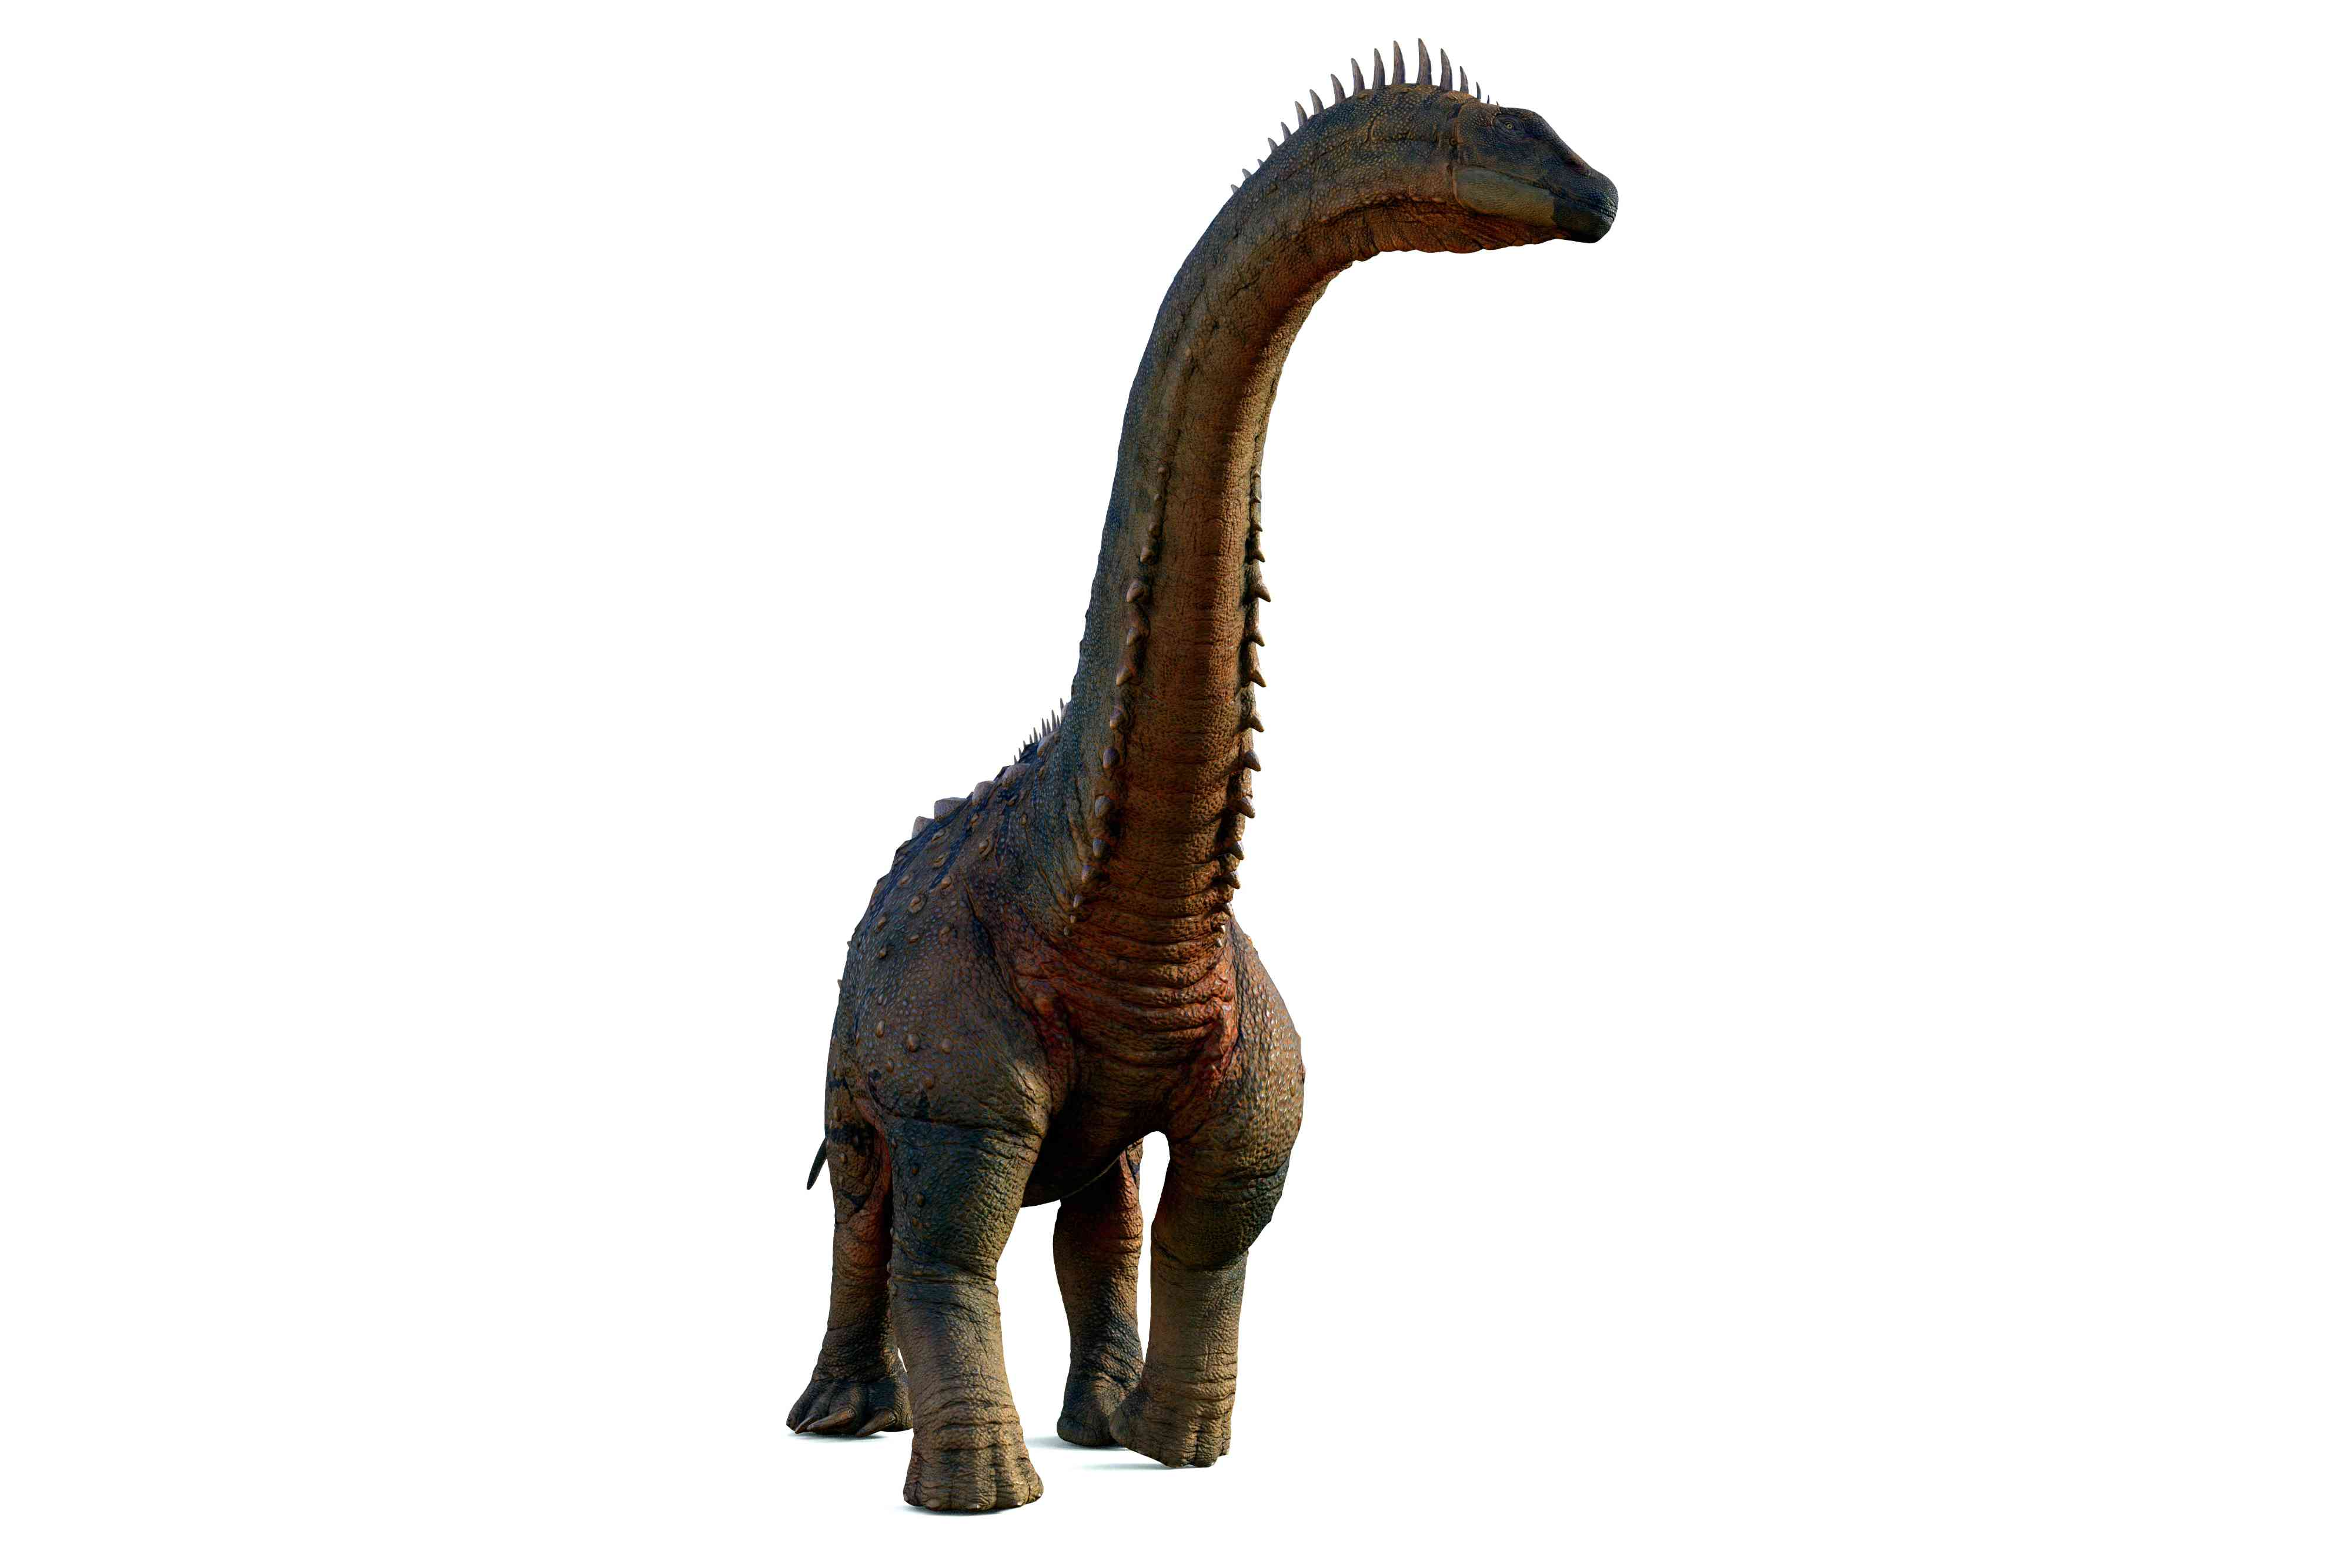 Alamosaurs rendered in 3D